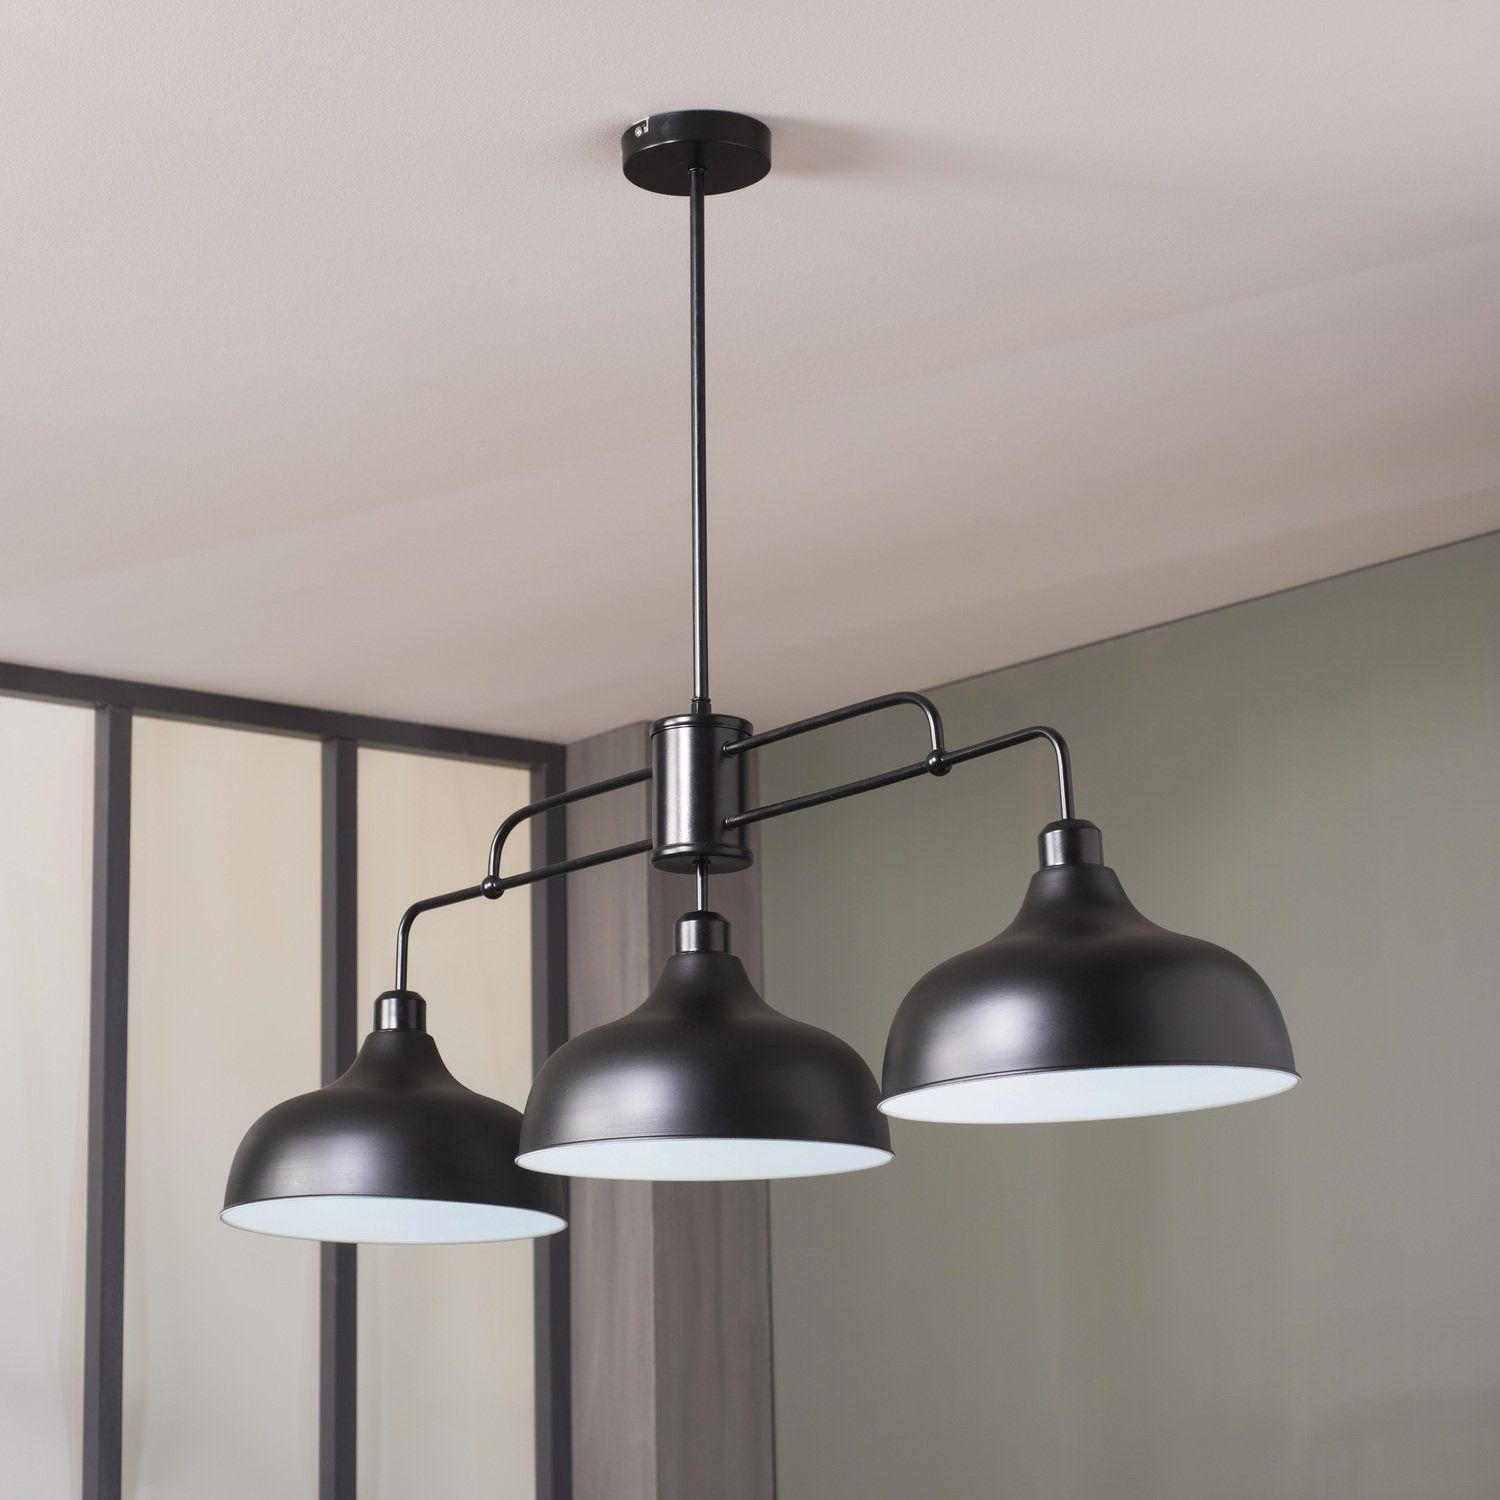 Cette suspension design adopte un style r solument for Luminaire suspendu industriel